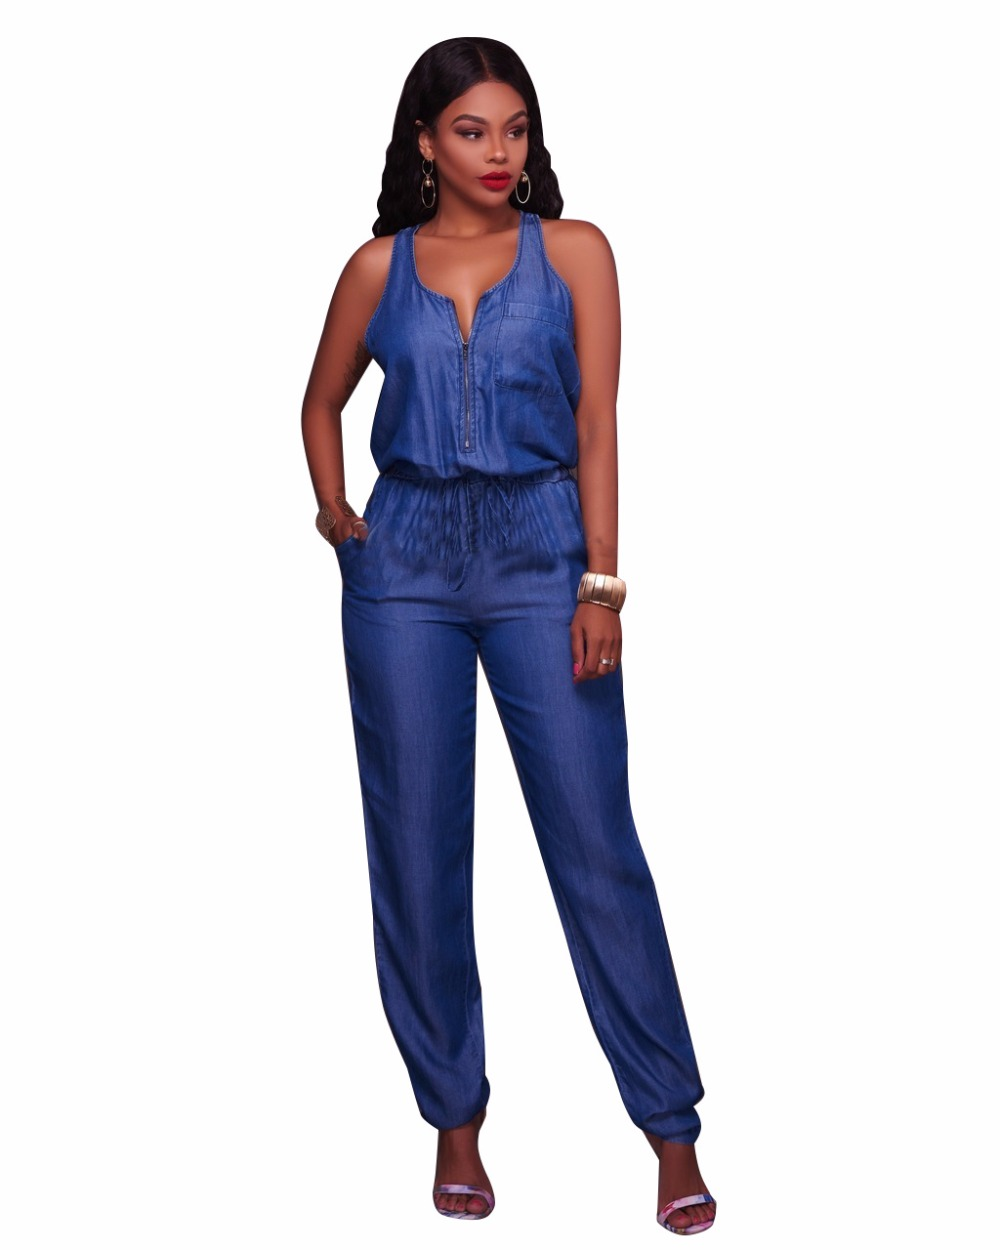 bfd910190d26 2019 Office Rompers Women Jumpsuit Summer vest Tied Waist Sexy Party Playsuit  Female Overalls Pockets leisure